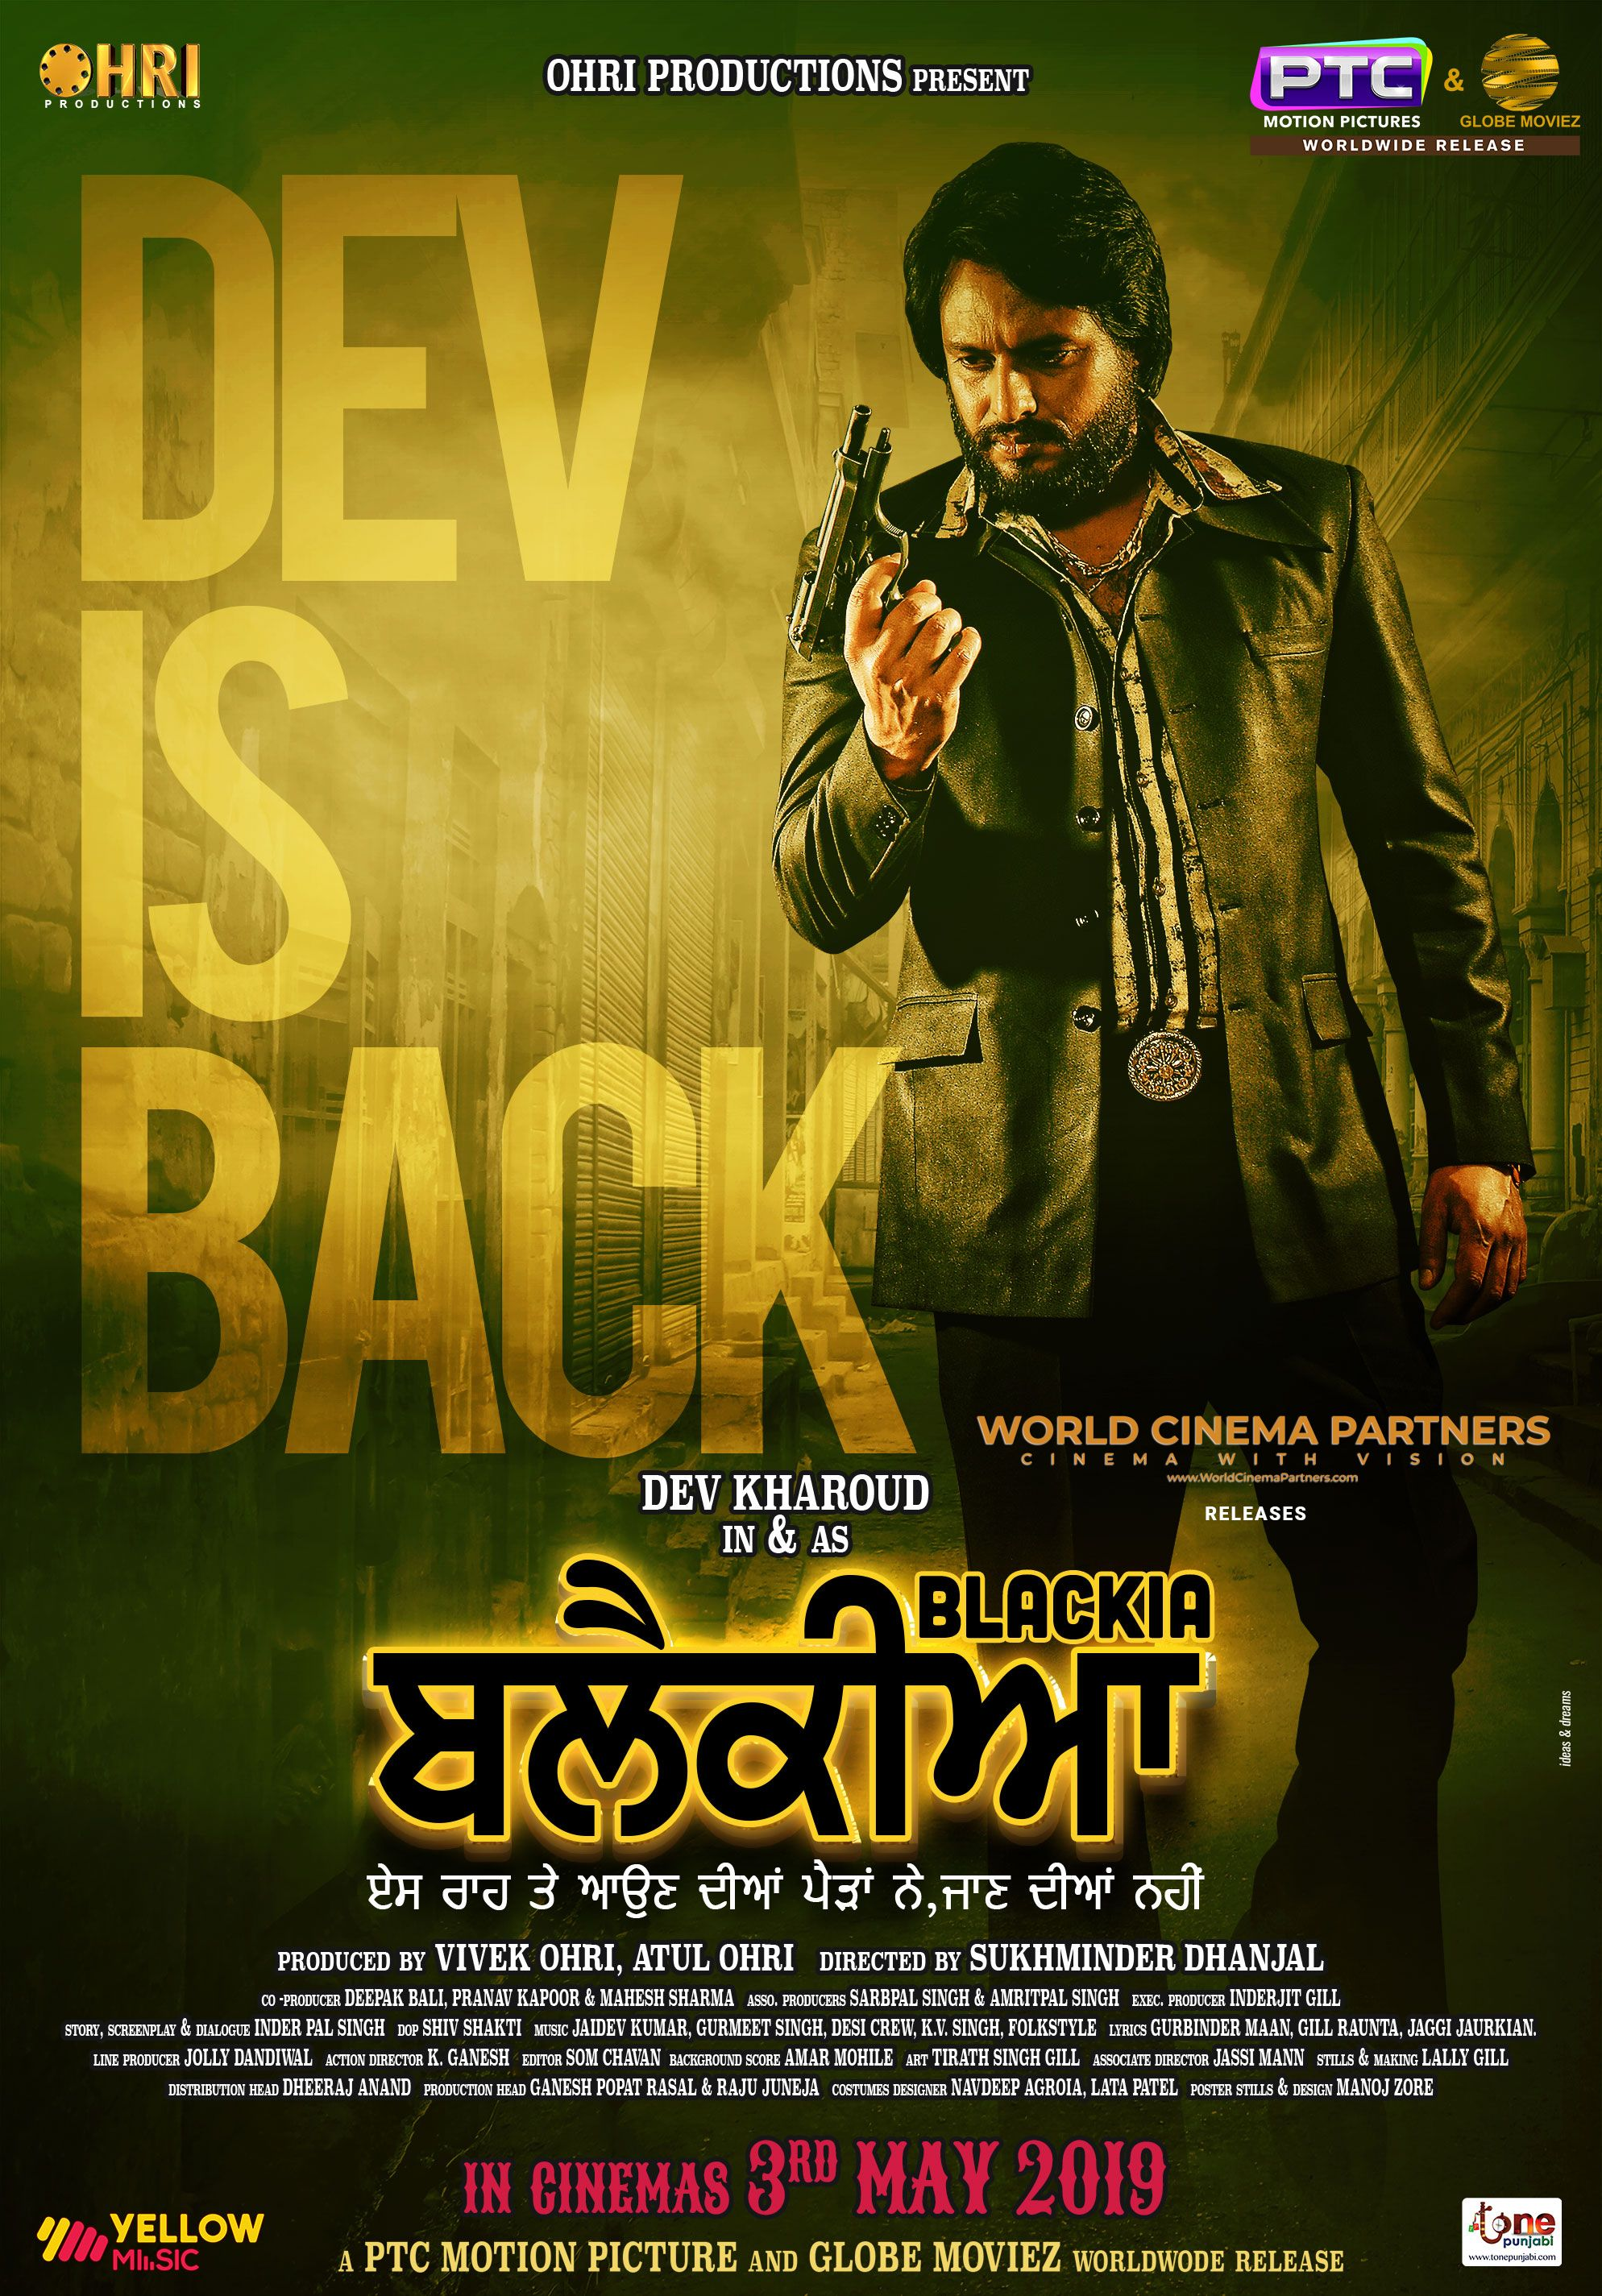 Yes You Are Thinking Right Dev Kharoud Is Back In And As Blackia Usa Canda Vancouver Toronto Newyo New Movies To Watch Hindi Movie Video New Movies